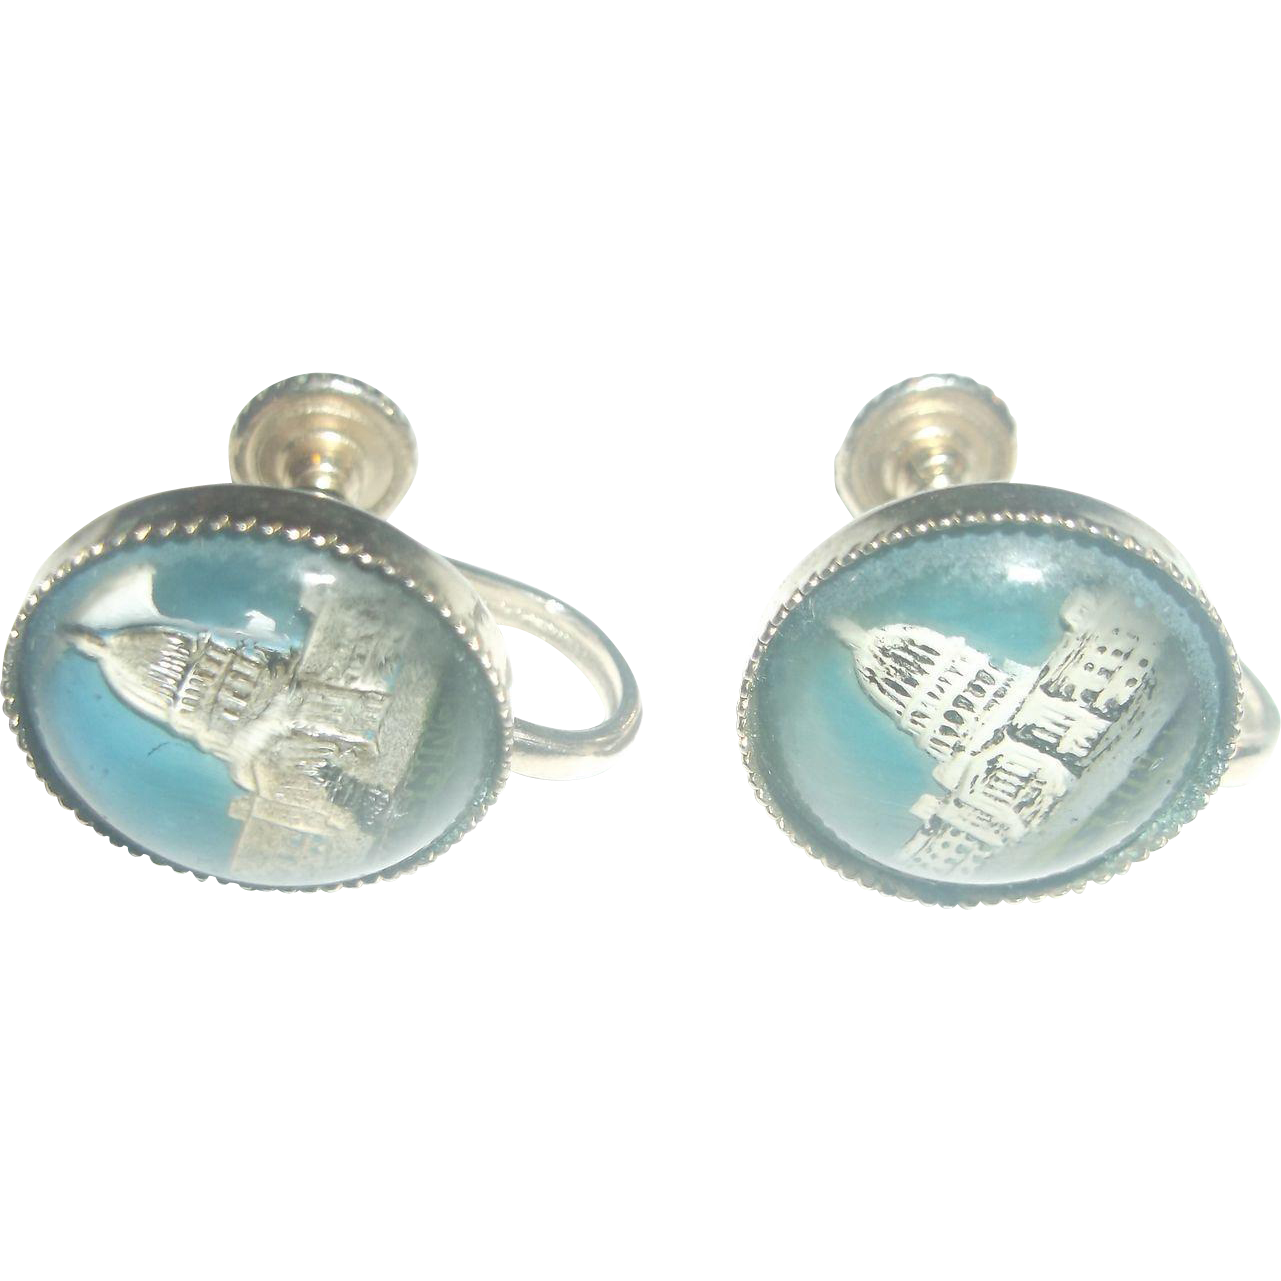 US Capitol Building Washington Glass Domed Intaglio Screwback Earrings Souvenirs